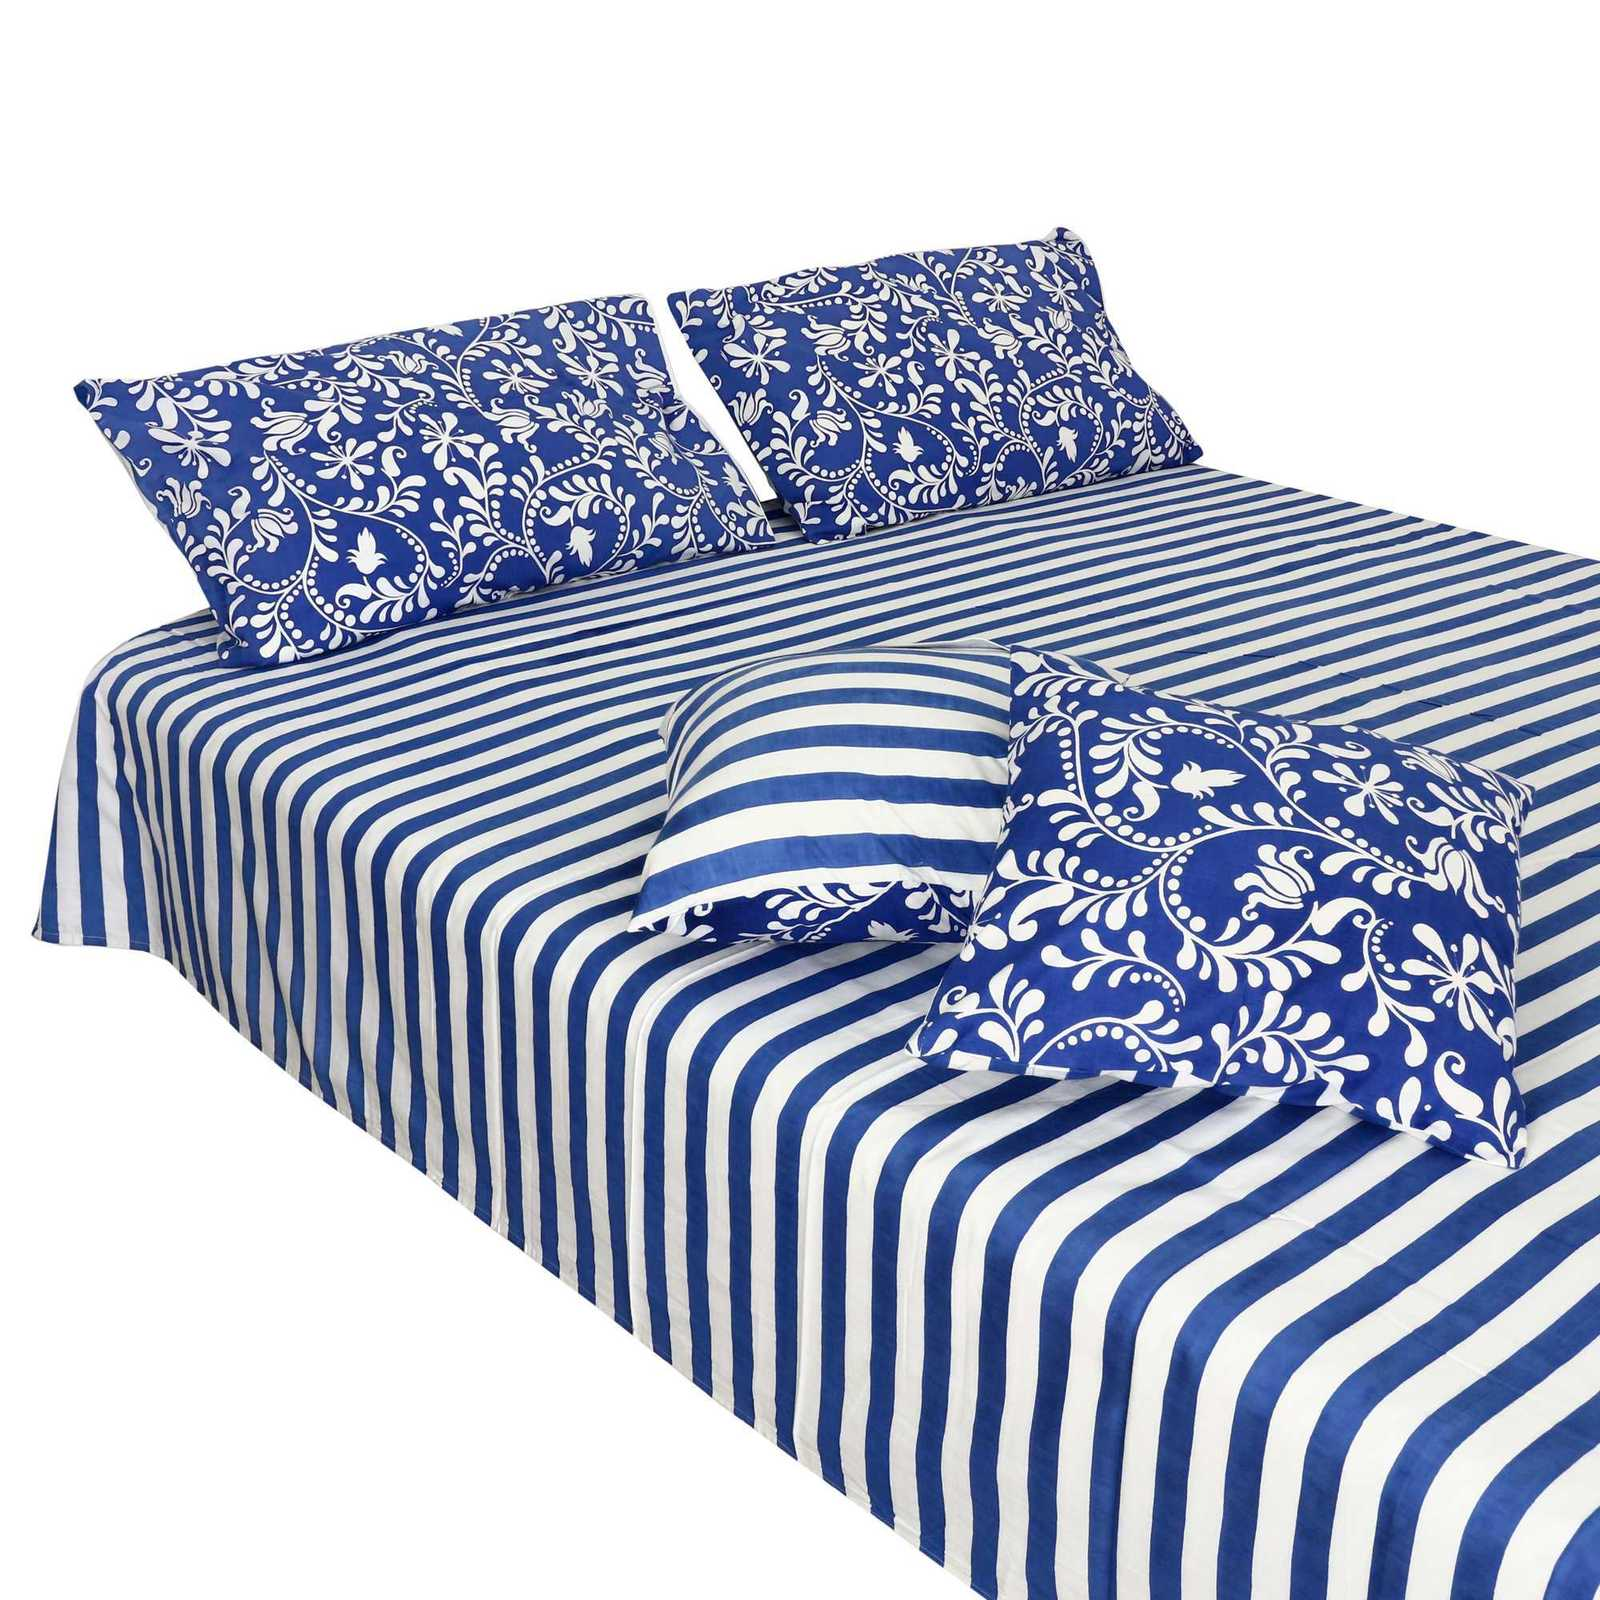 Home Decor Bedding Cotton Bed Sheet Queen And 50 Similar Items Home Decorators Catalog Best Ideas of Home Decor and Design [homedecoratorscatalog.us]